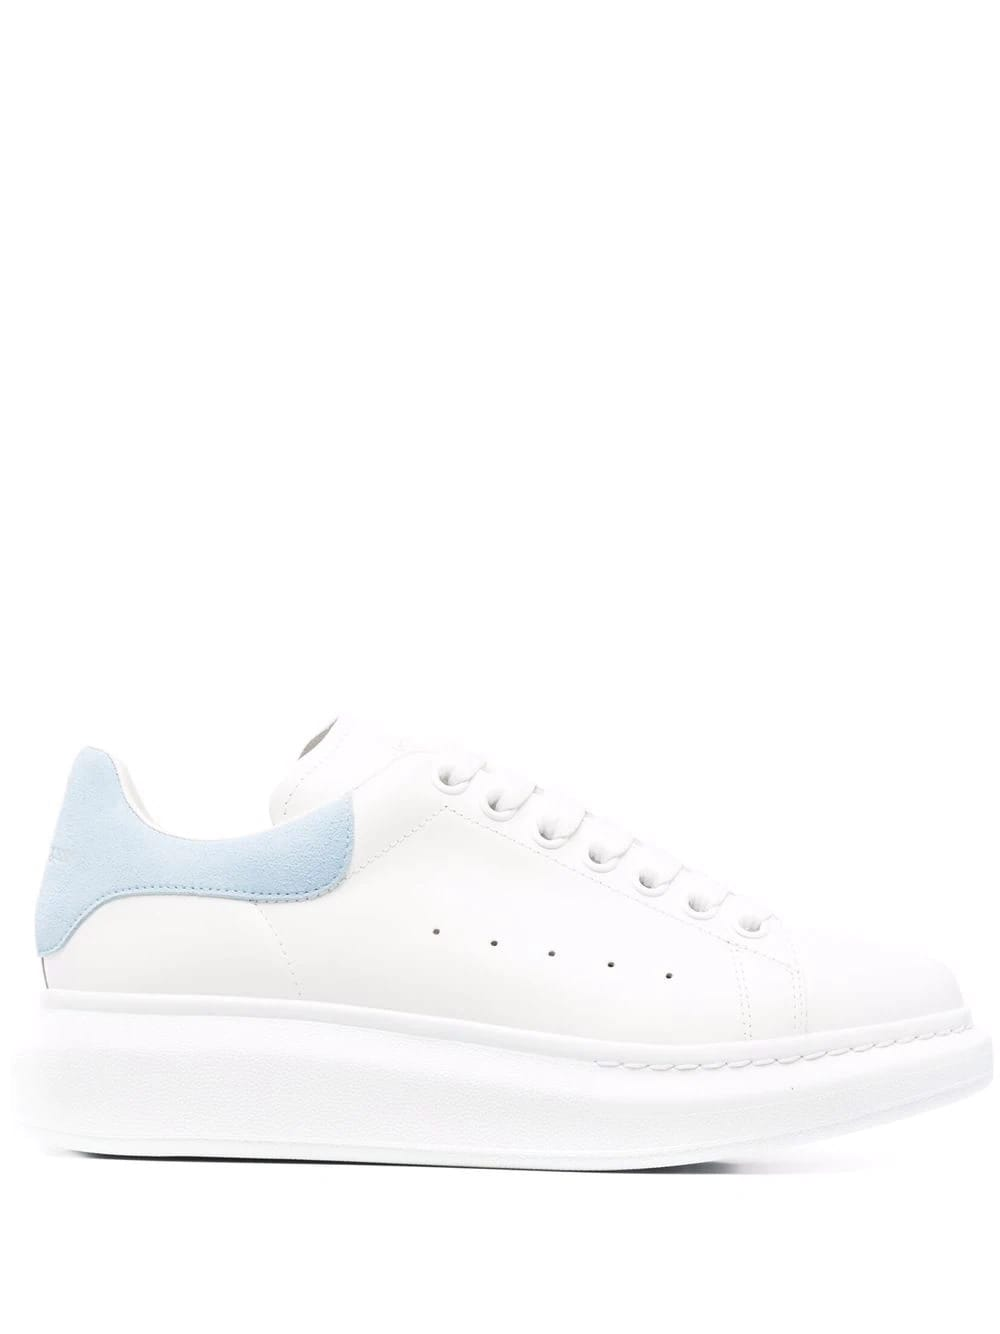 Alexander McQueen Woman White And Light Blue Oversize Sneakers